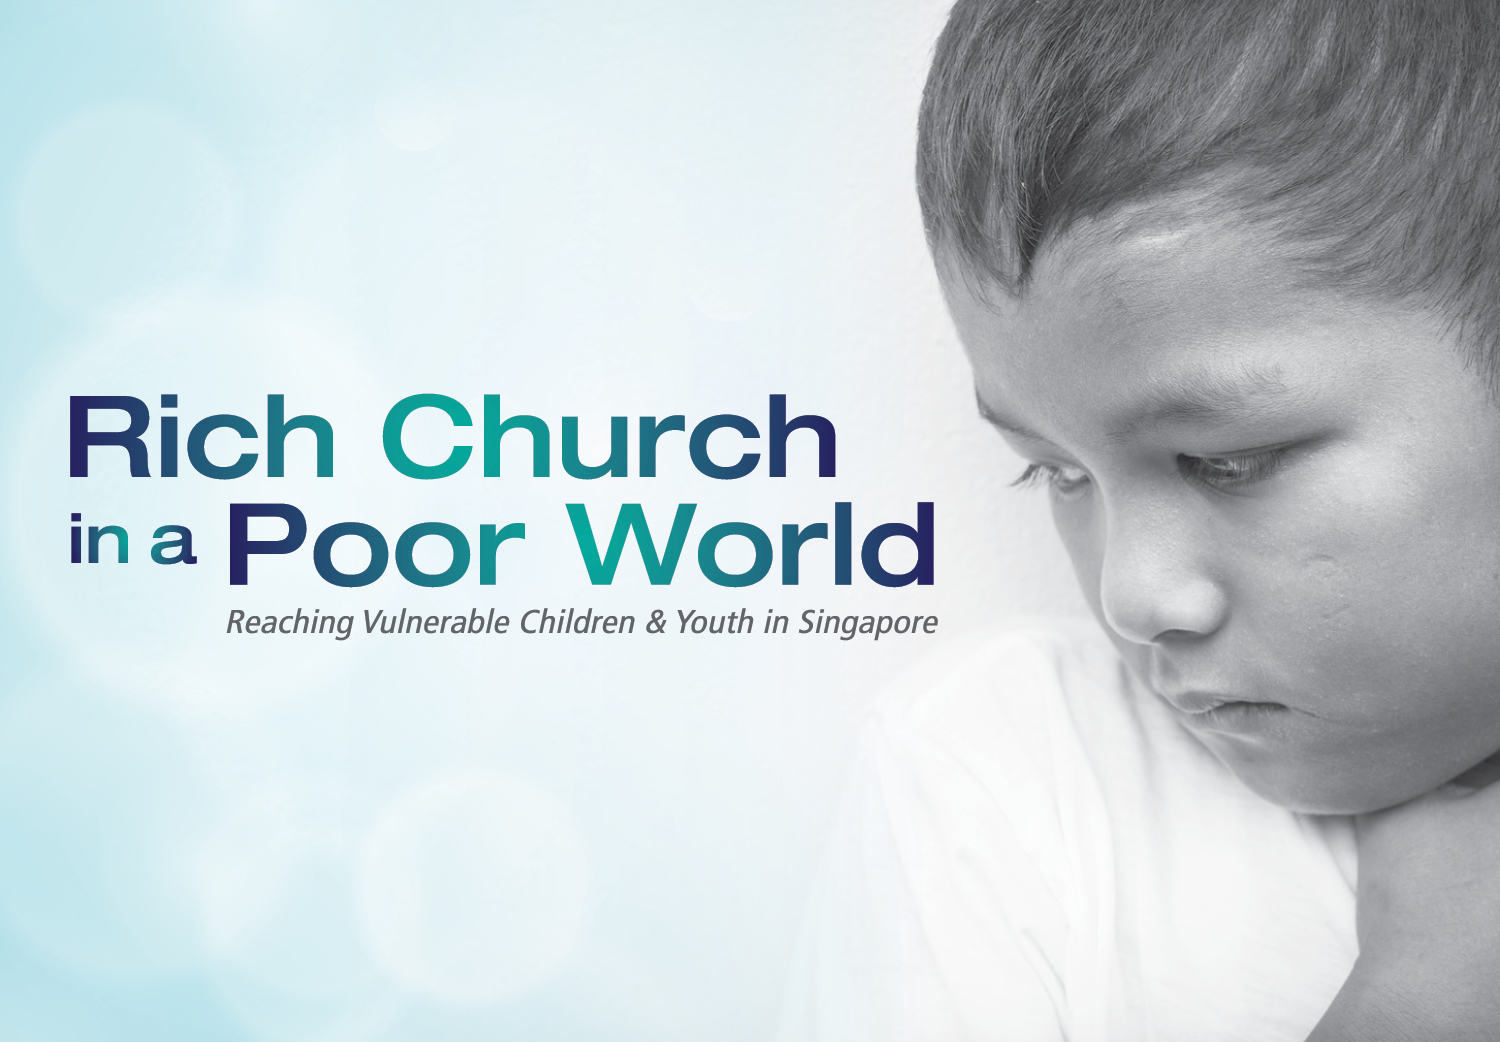 Rich Church in a Poor World